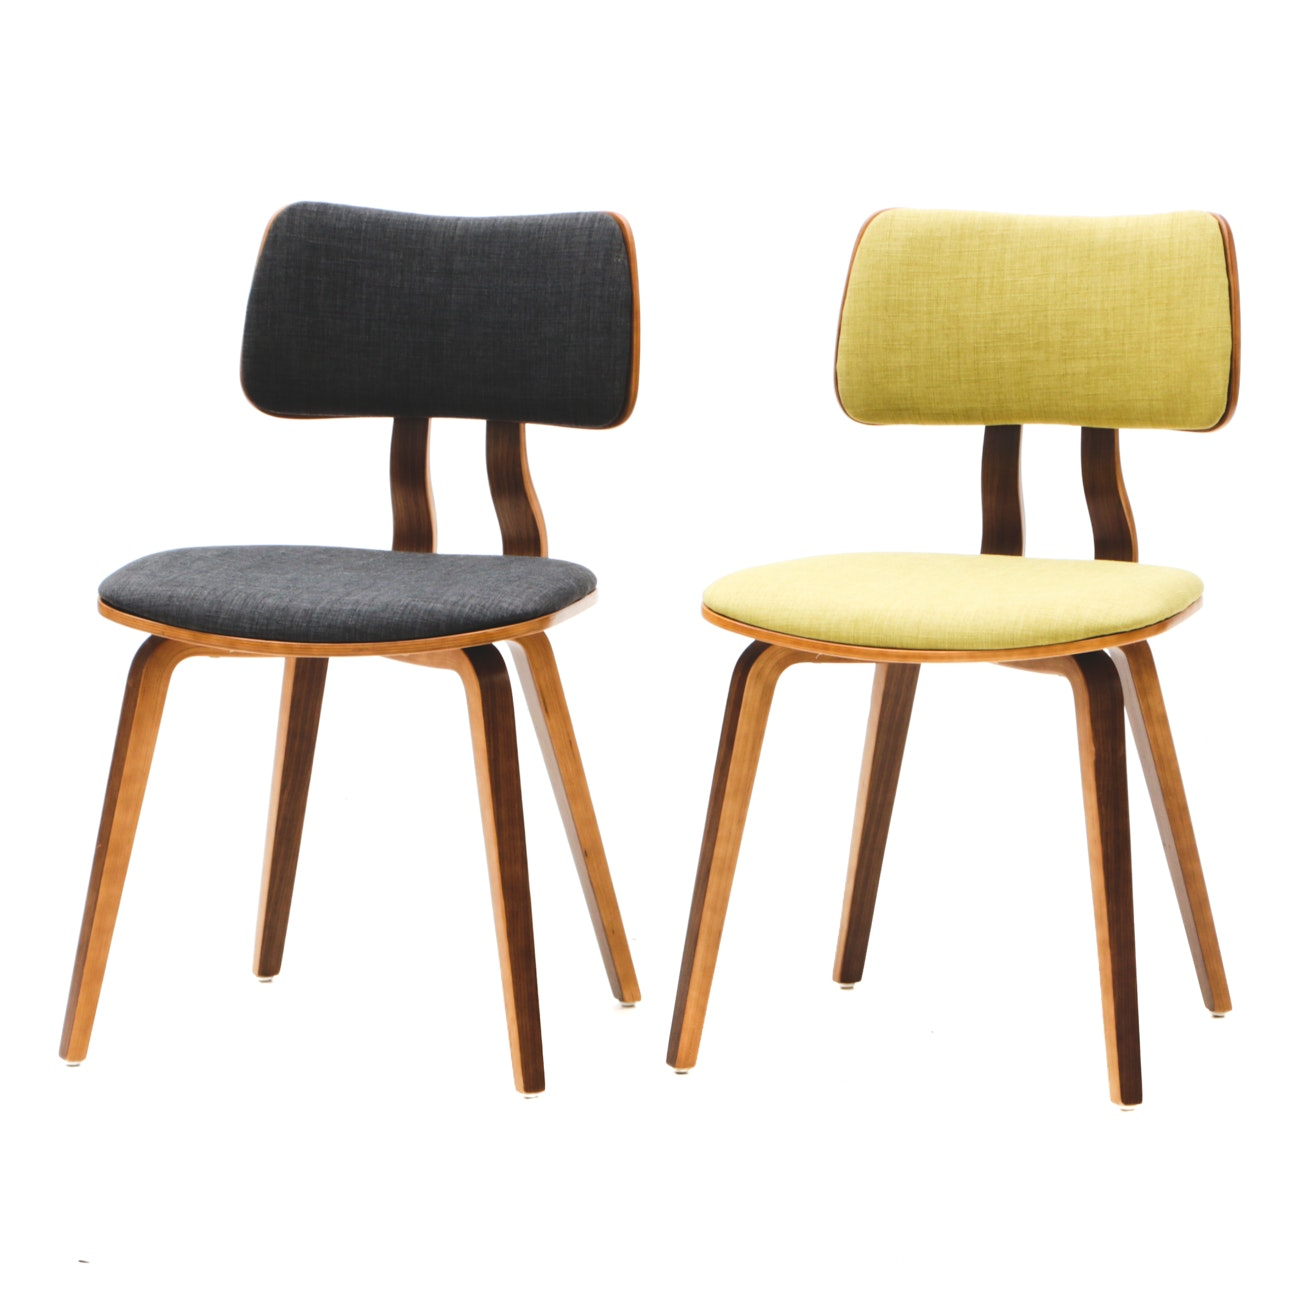 Pair of Mid Century Modern Style Side Chairs